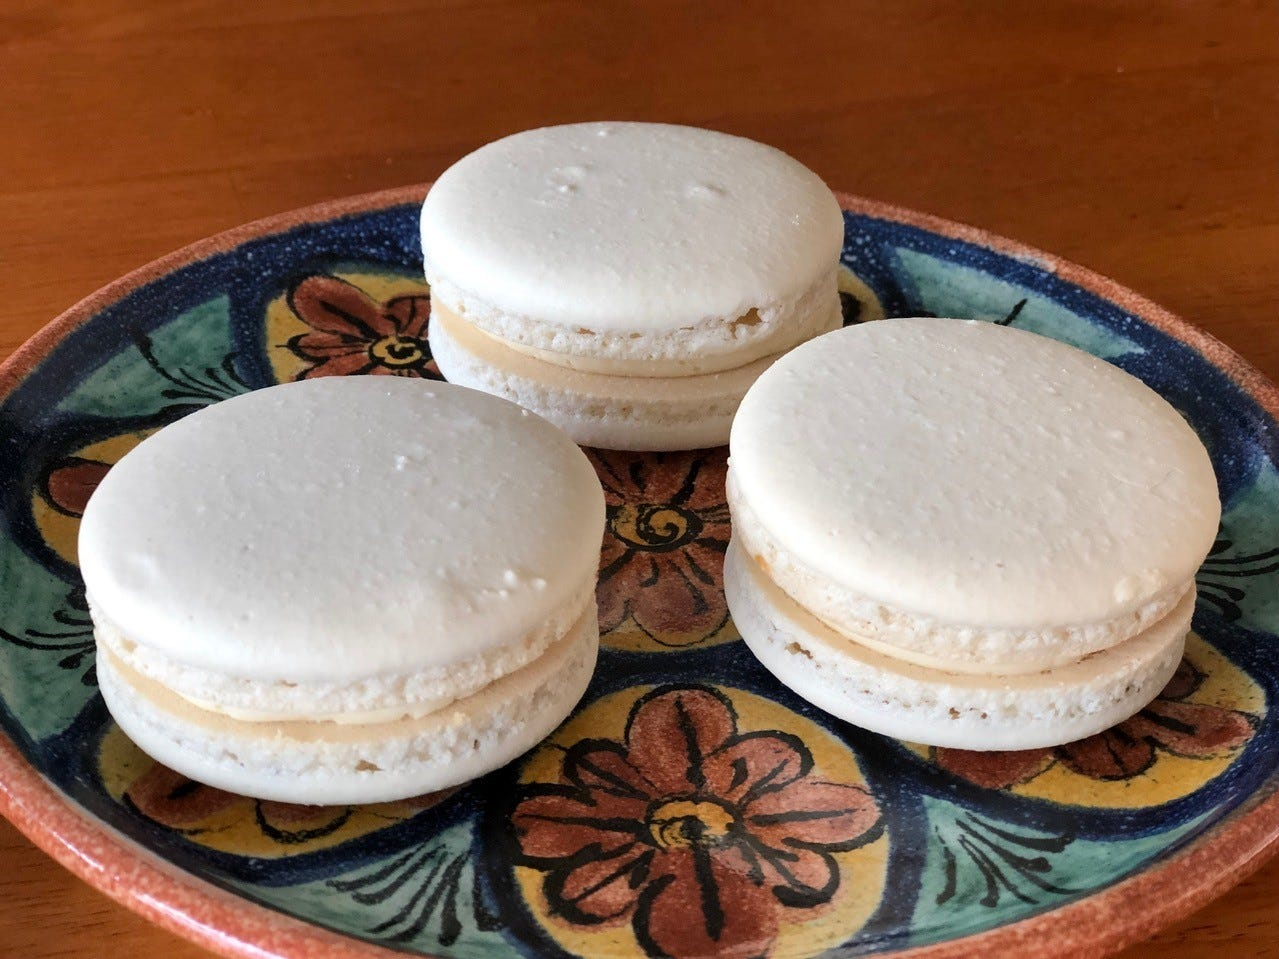 Three of Eden Bakery's French macarons.